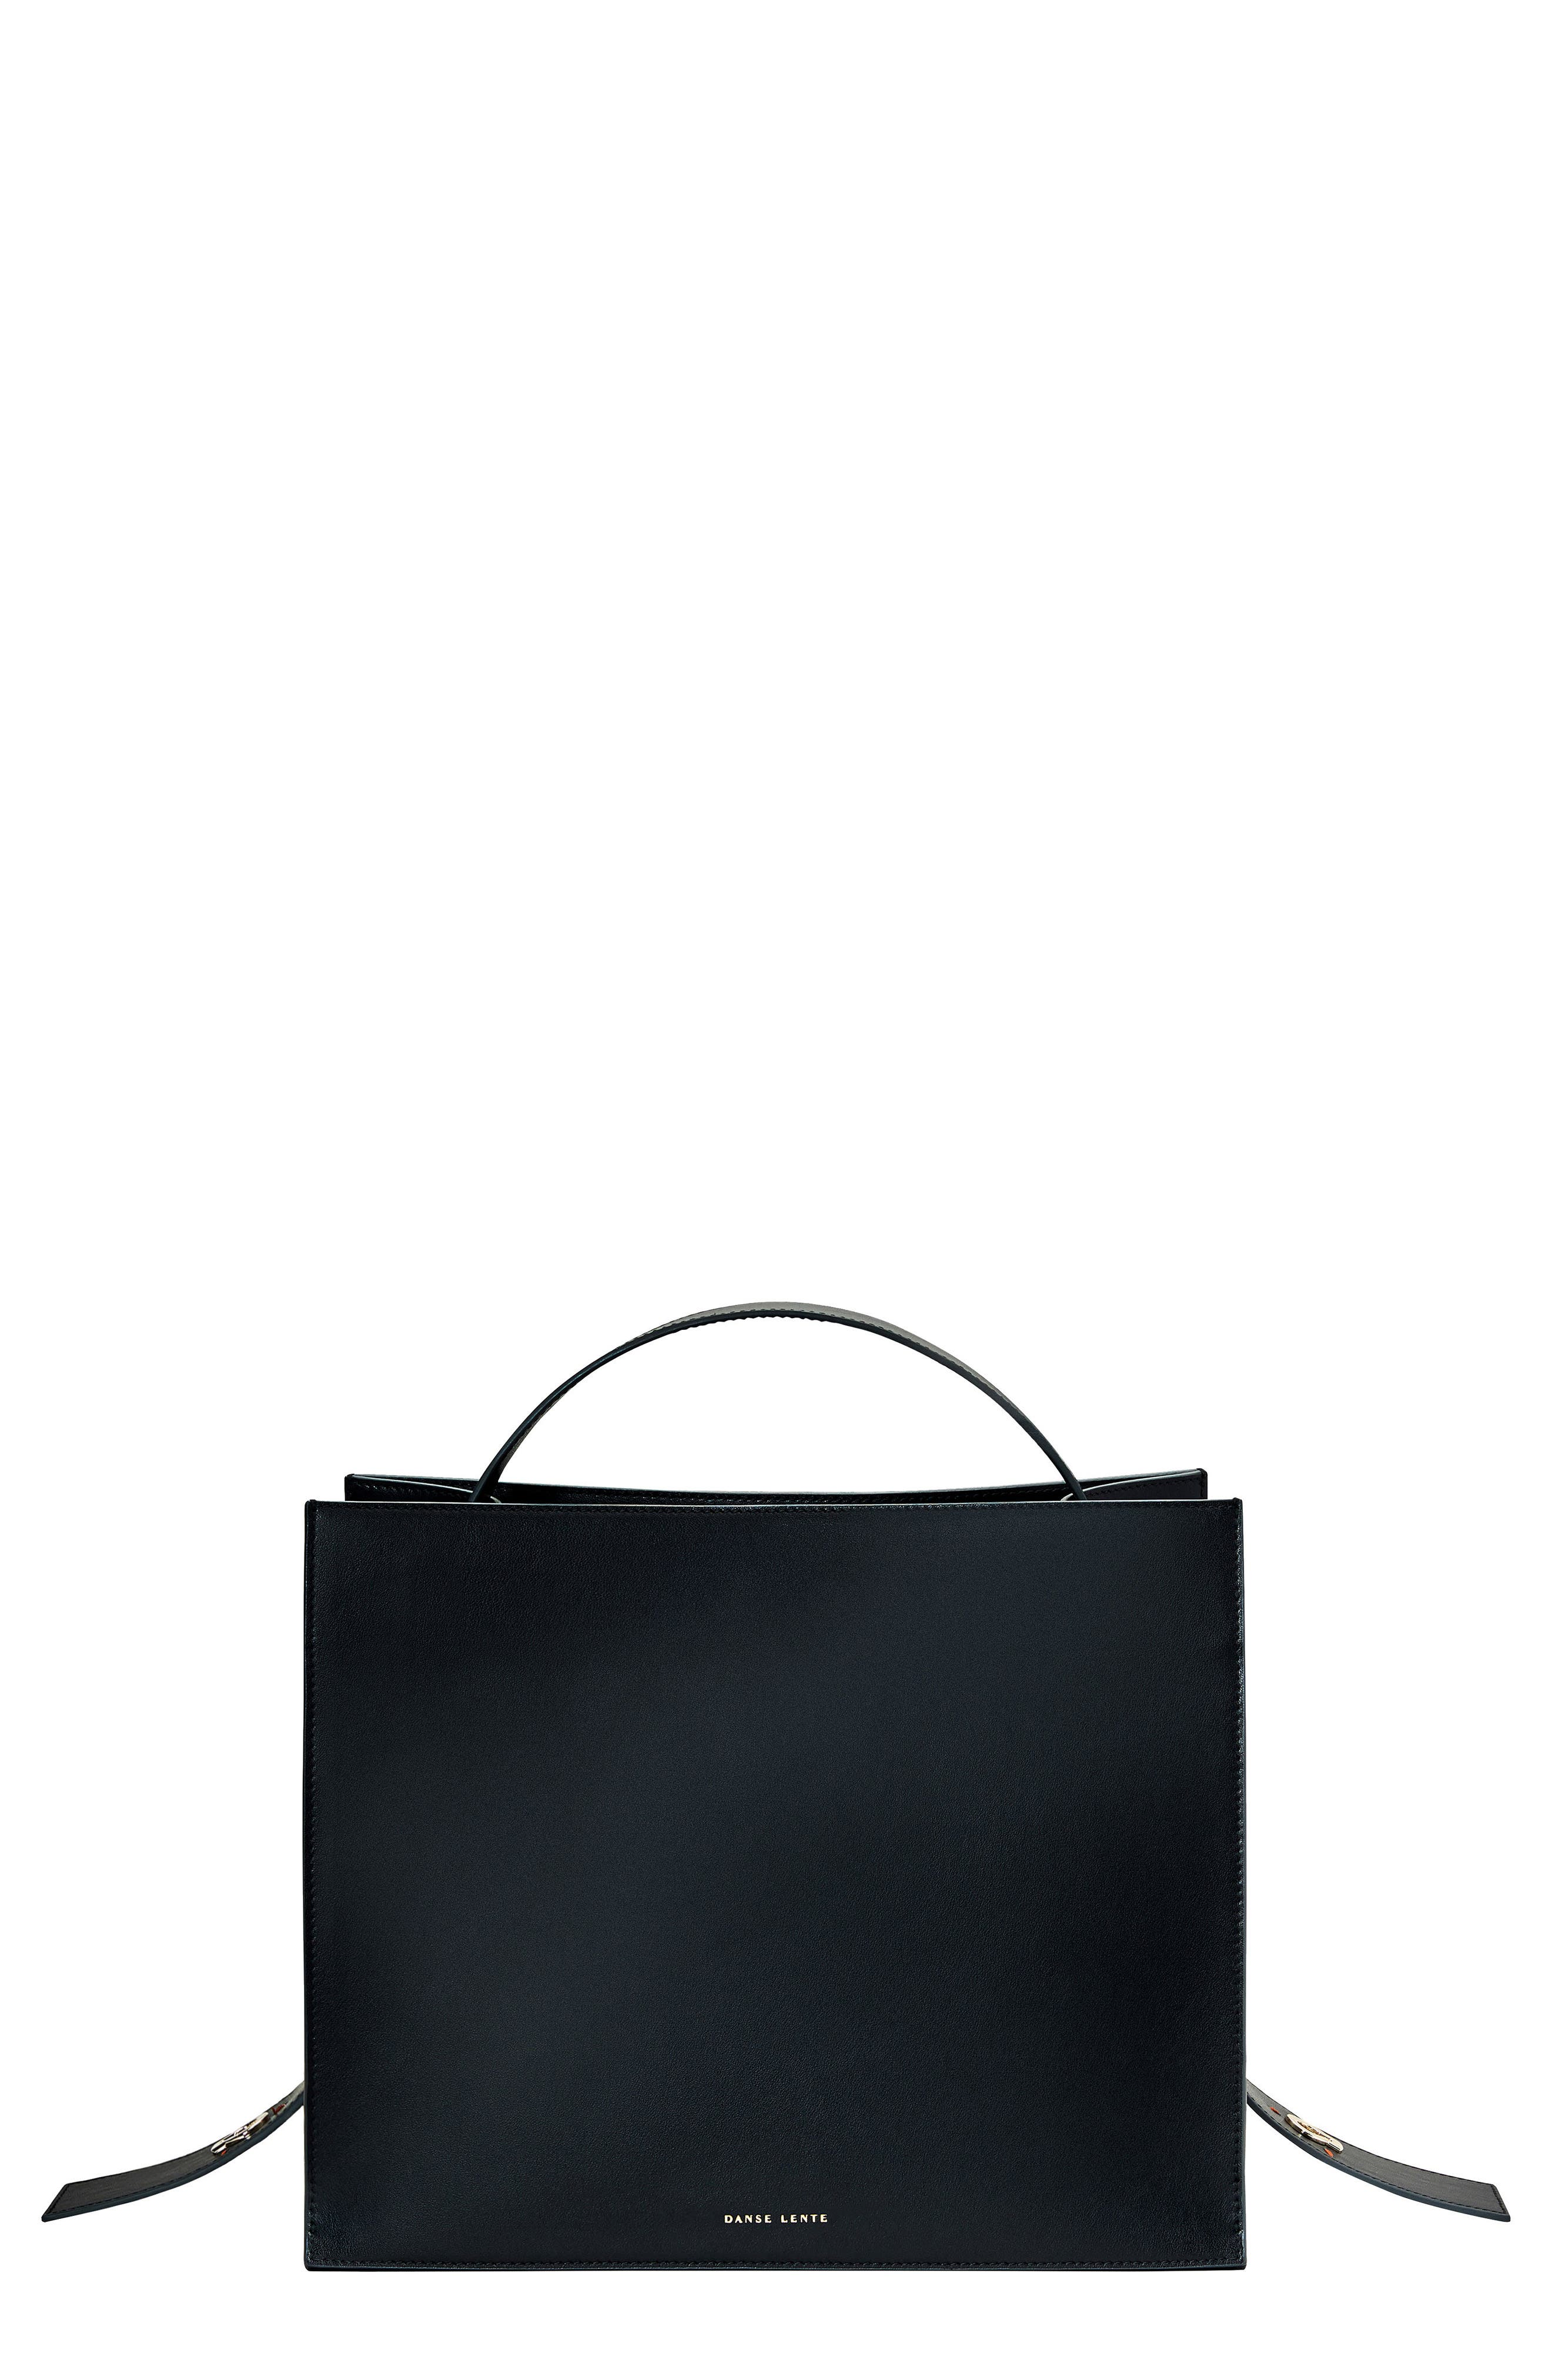 Young Leather Tote Bag,                             Main thumbnail 1, color,                             Black